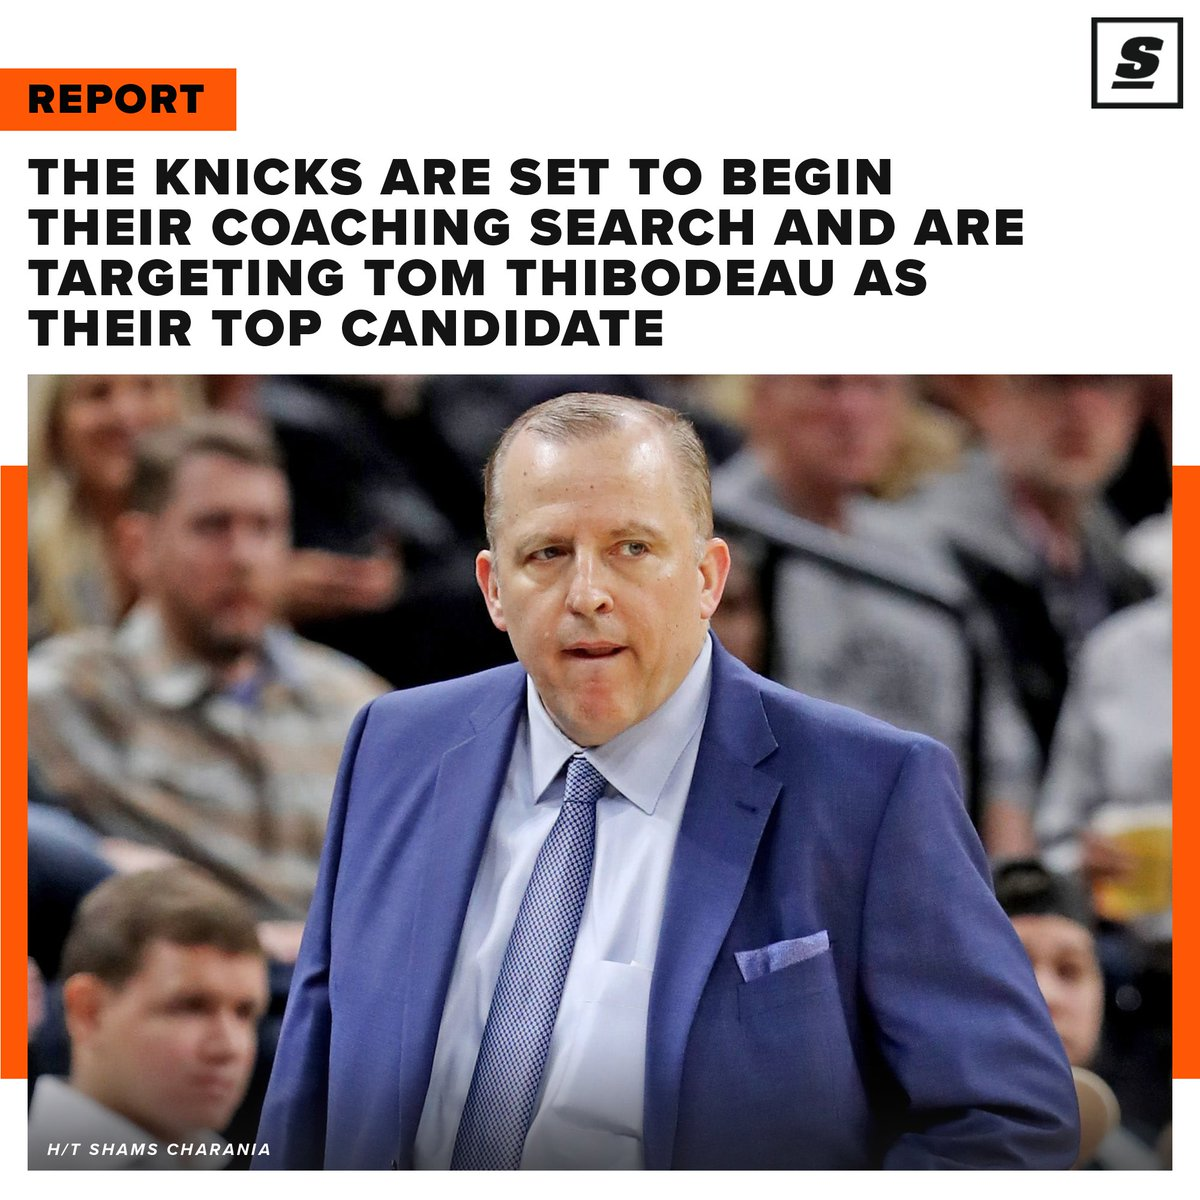 The Knicks reportedly want Tom Thibodeau to be their next head coach. Would Thibs be a good fit in New York? 🤔